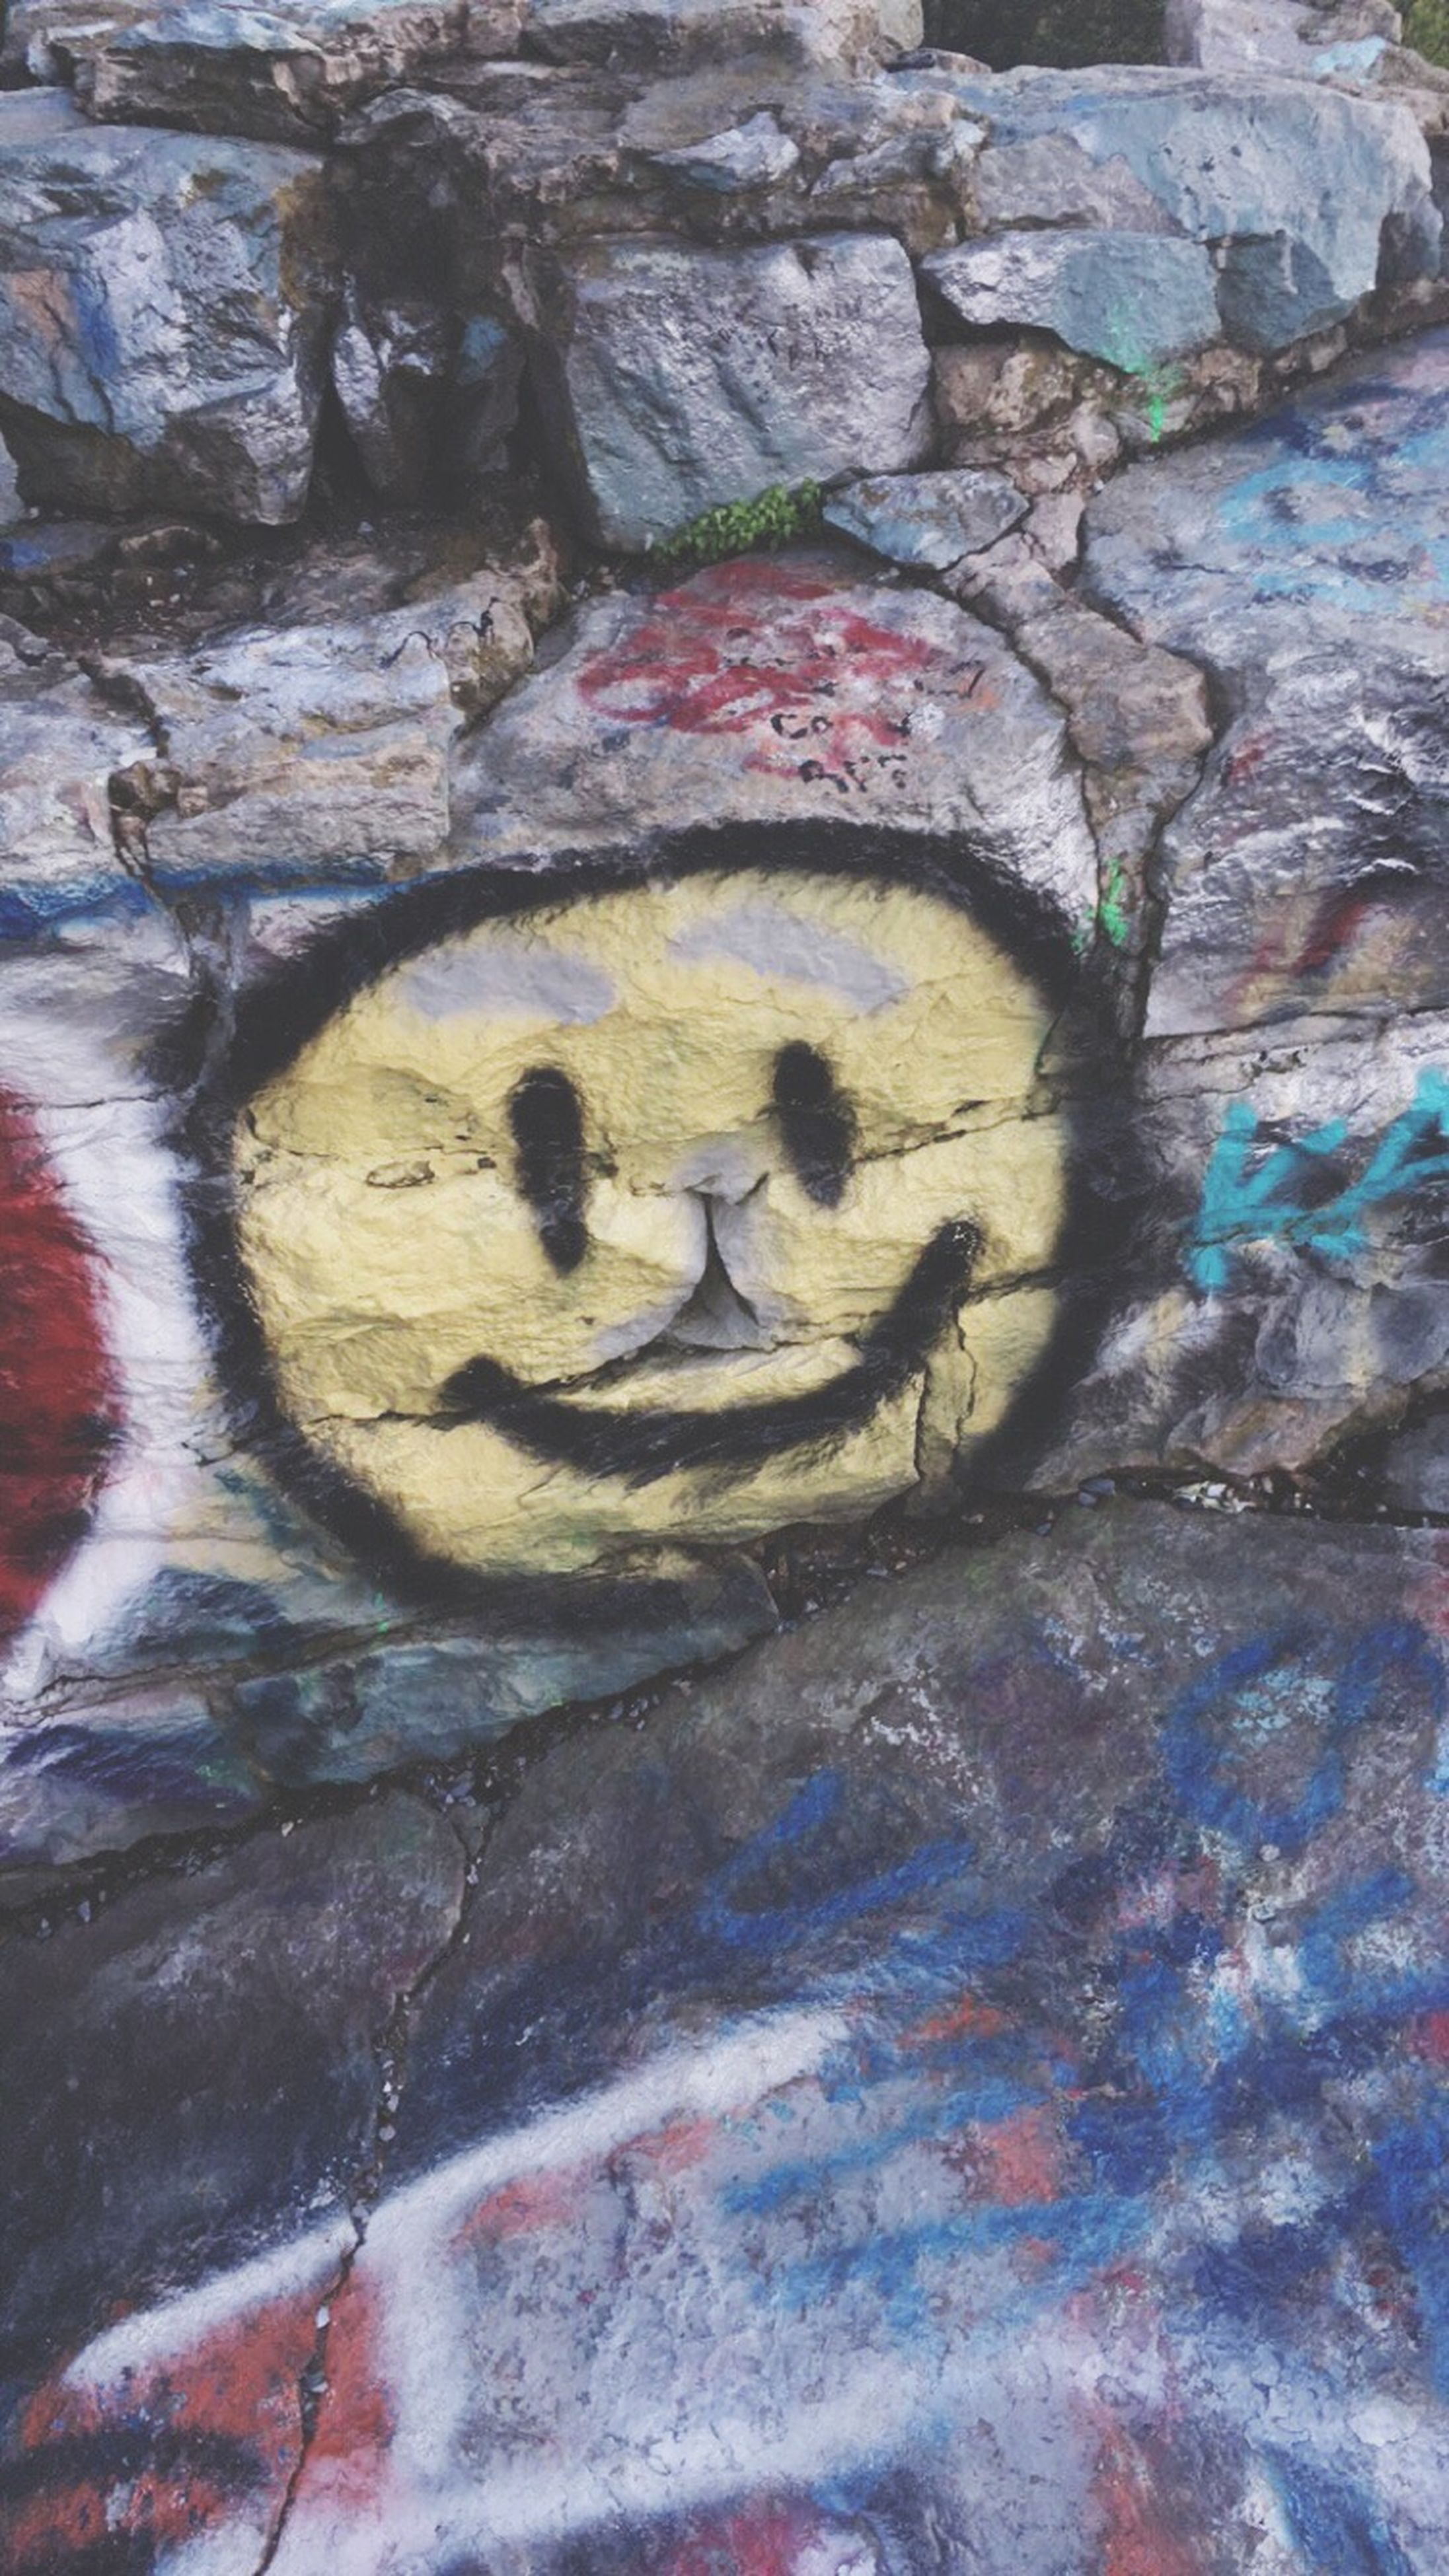 art and craft, spray paint, creativity, multi colored, outdoors, textured, no people, day, full frame, close-up, backgrounds